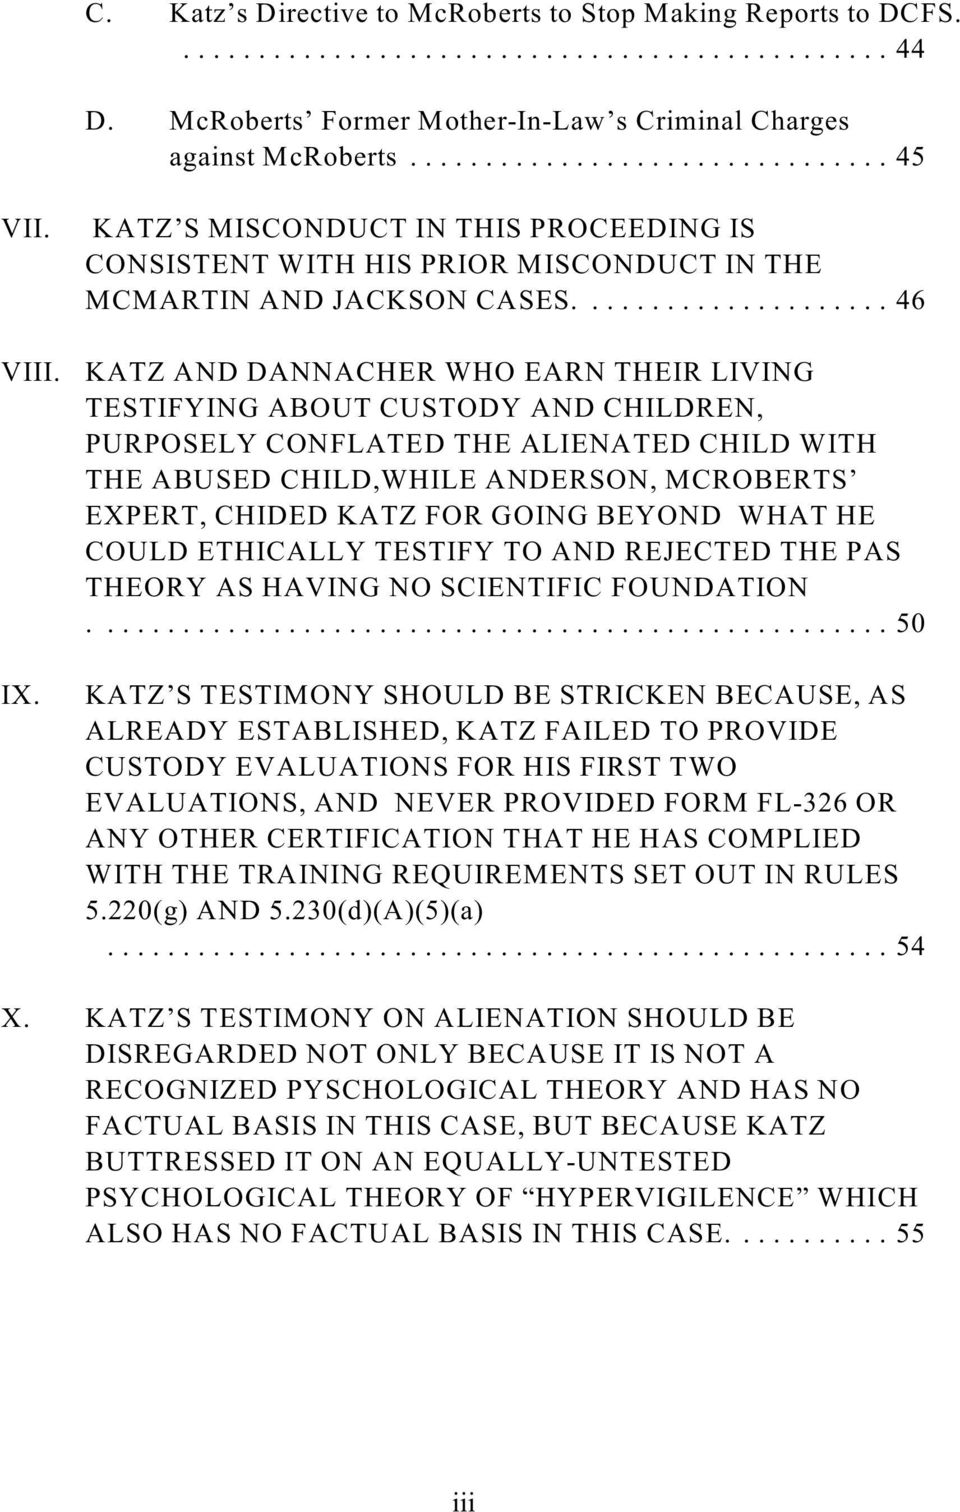 KATZ AND DANNACHER WHO EARN THEIR LIVING TESTIFYING ABOUT CUSTODY AND CHILDREN, PURPOSELY CONFLATED THE ALIENATED CHILD WITH THE ABUSED CHILD,WHILE ANDERSON, MCROBERTS EXPERT, CHIDED KATZ FOR GOING